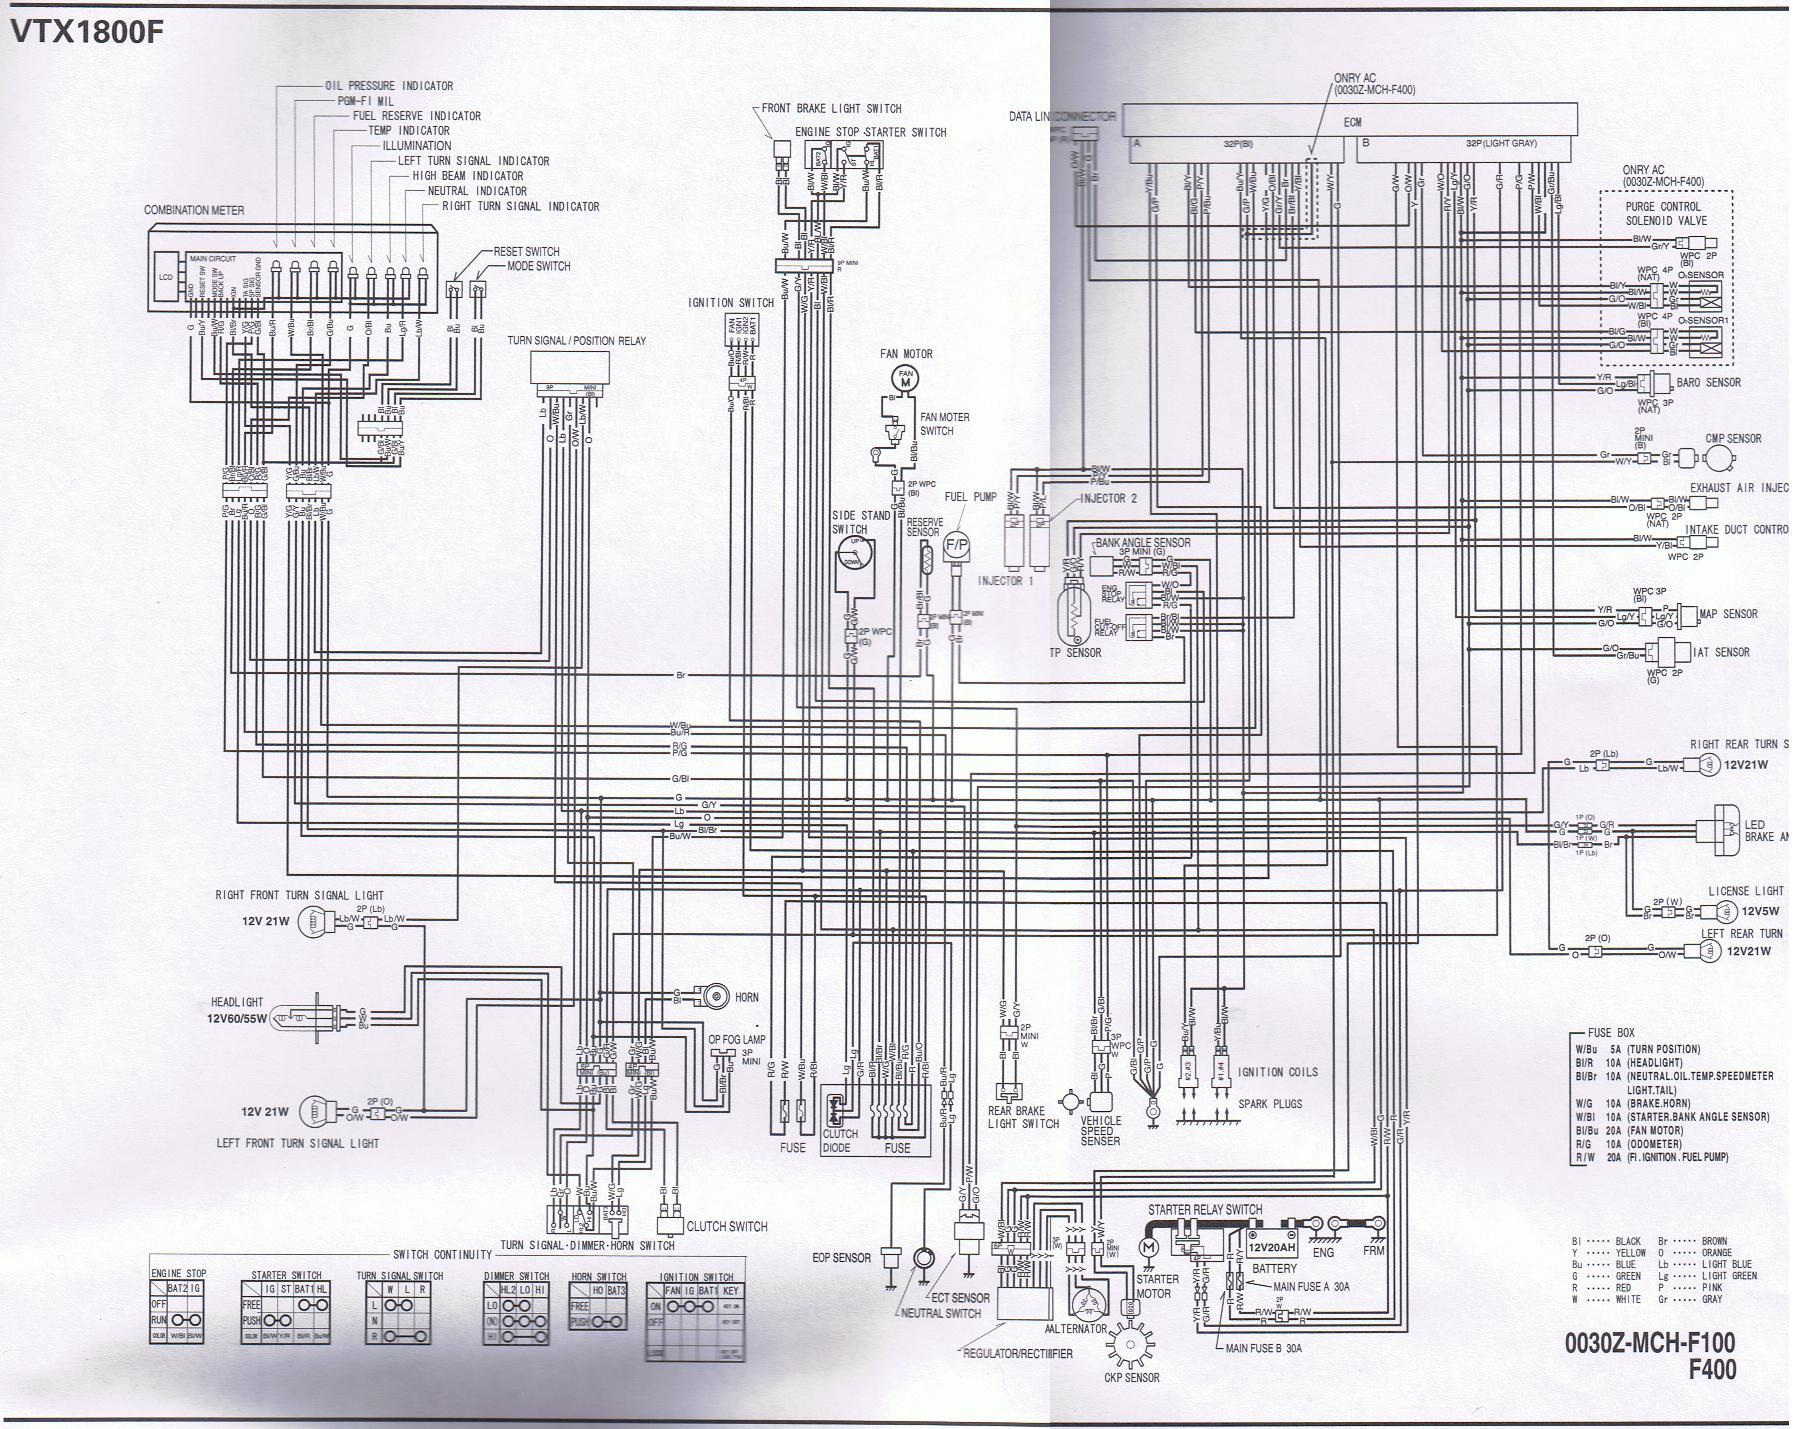 05+_VTX1800_F_schematic motorcycle wire schematics bareass choppers motorcycle tech pages wiring diagram for victory motorcycles at bakdesigns.co